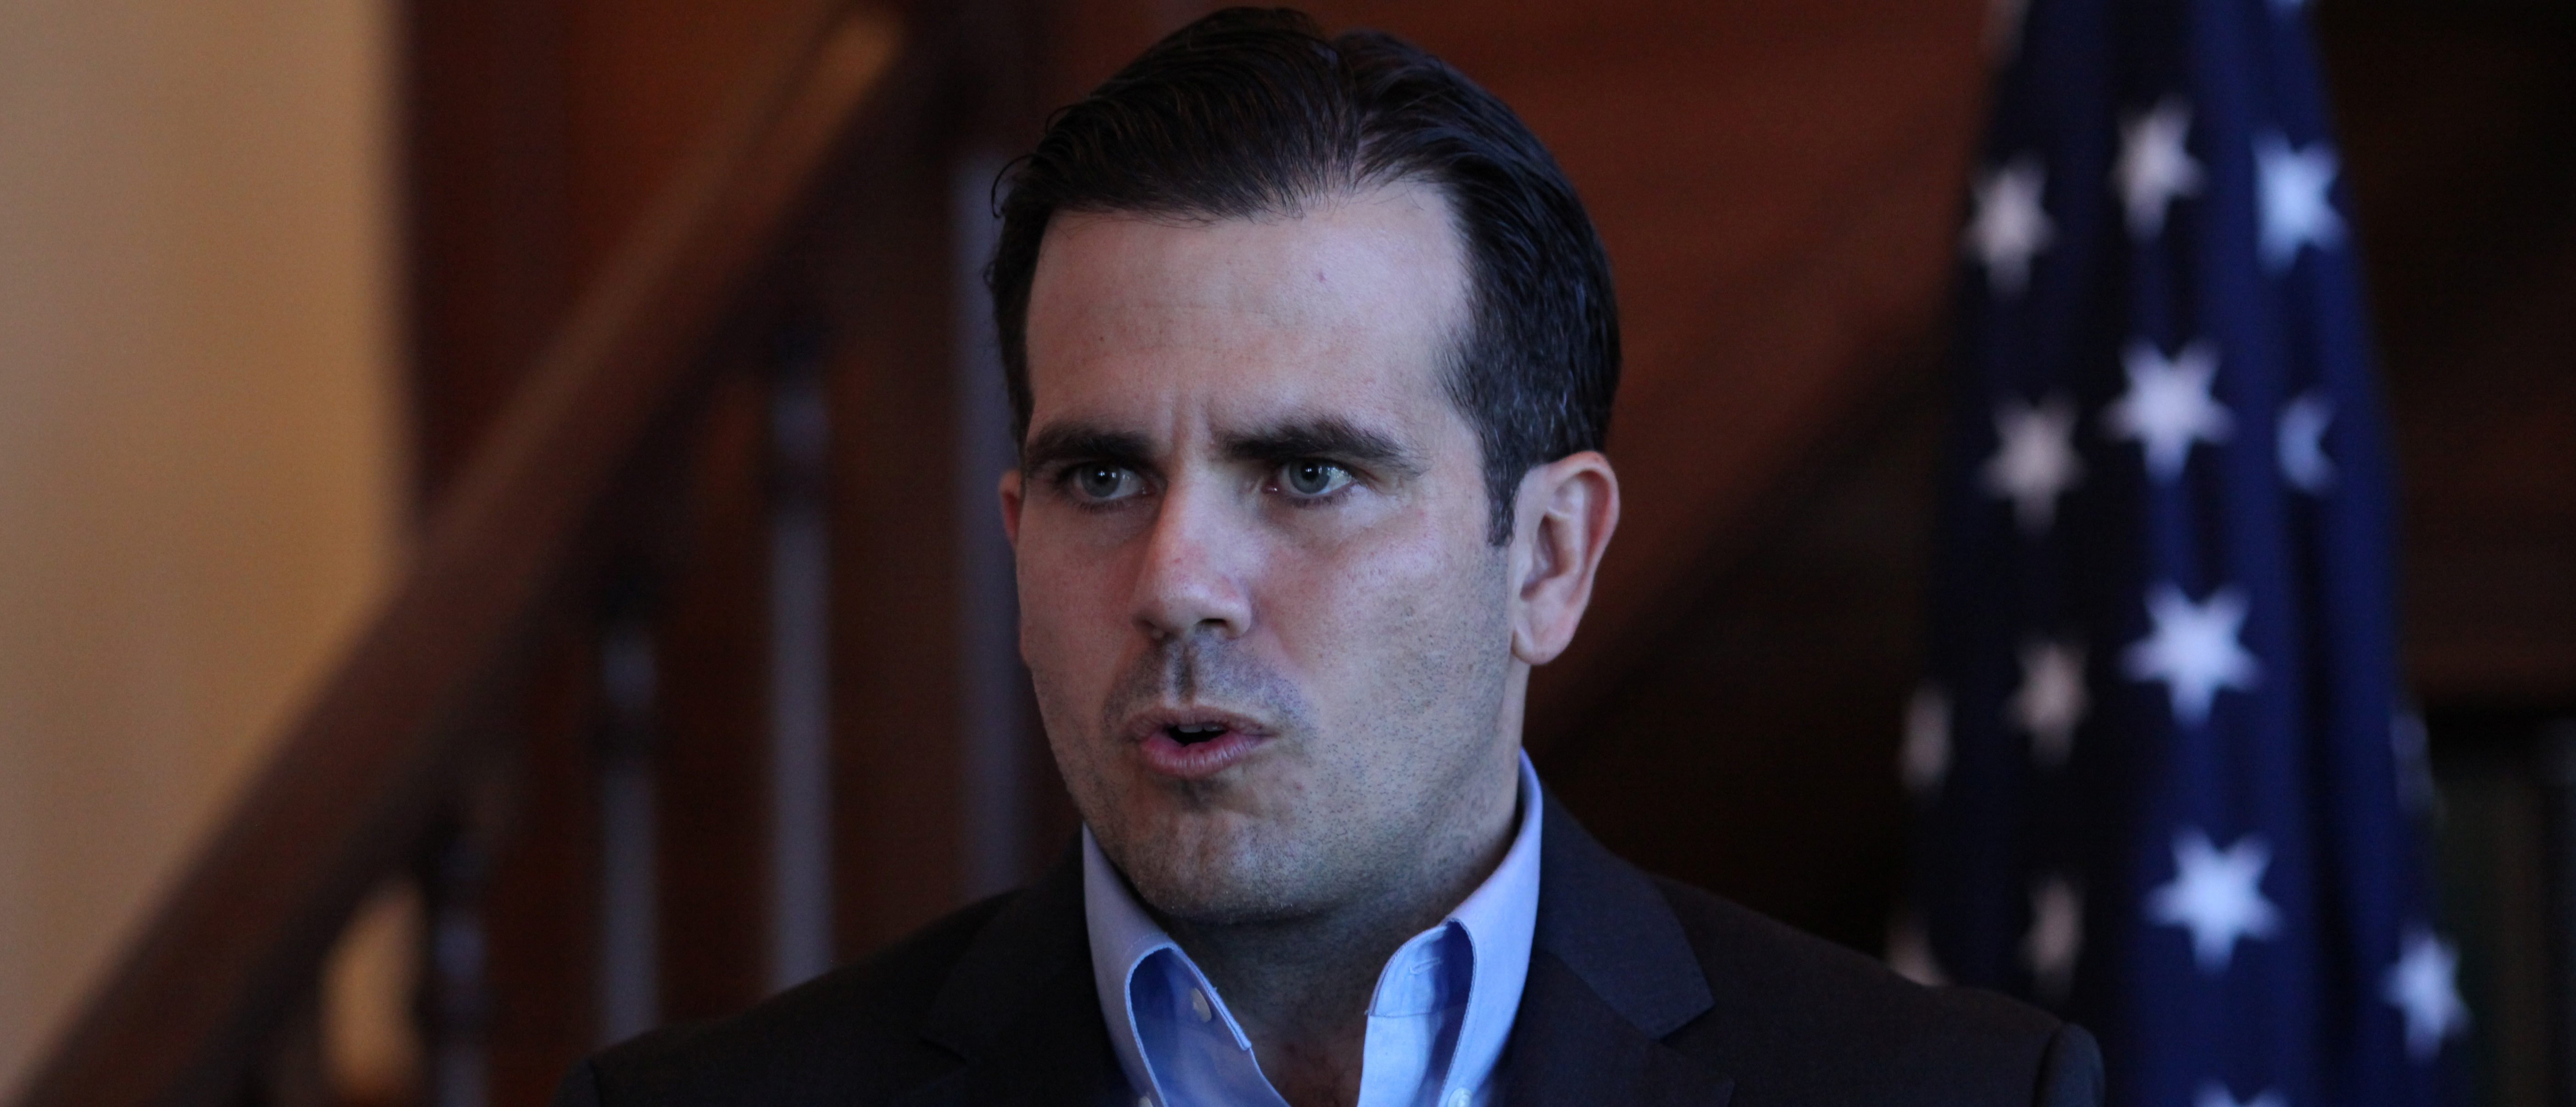 Puerto Rico Gov. Ricardo Rossello speaks during a Facebook live broadcast in the library of the governor's mansion, in San Juan, Puerto Rico, Jan. 24, 2018. REUTERS/Alvin Baez